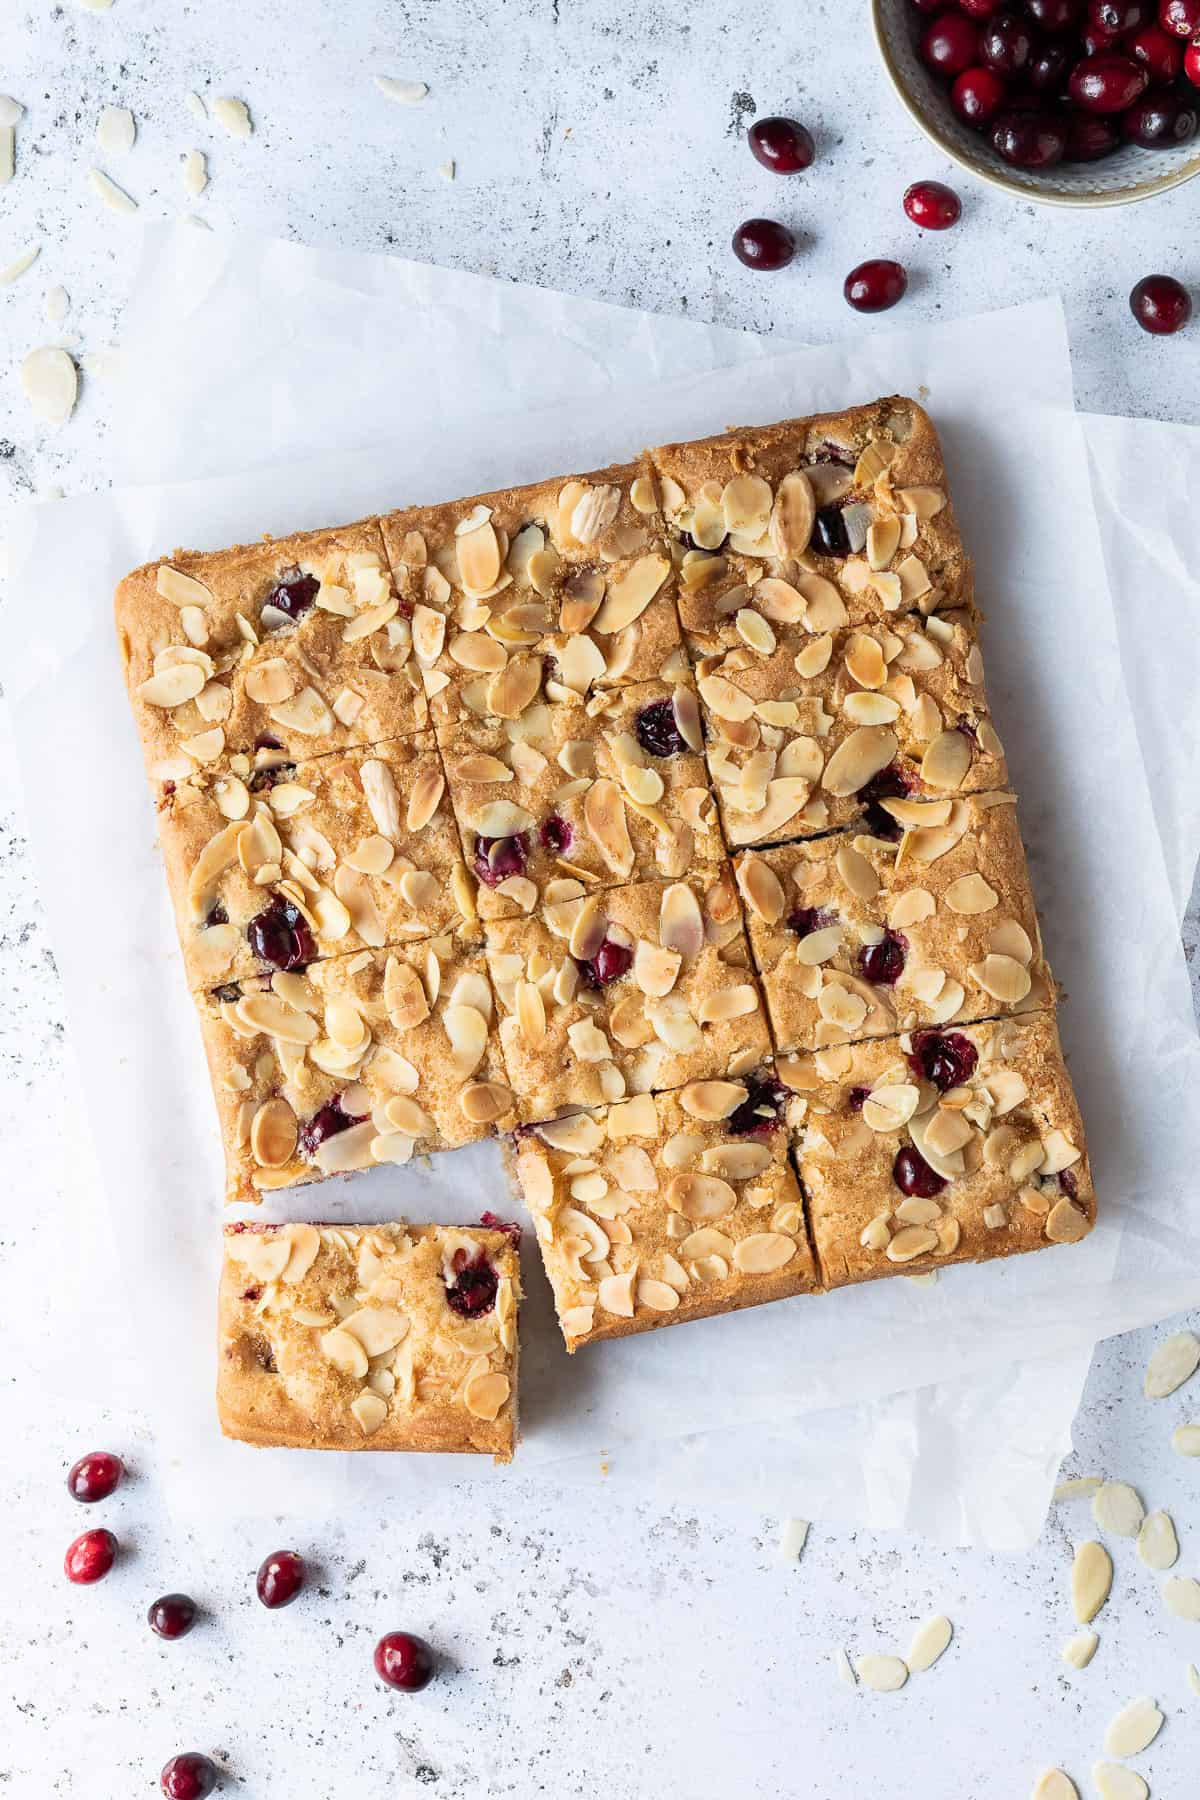 Vegan cranberry almond cake on a sheet of white baking parchment on a white surface with fresh cranberries.